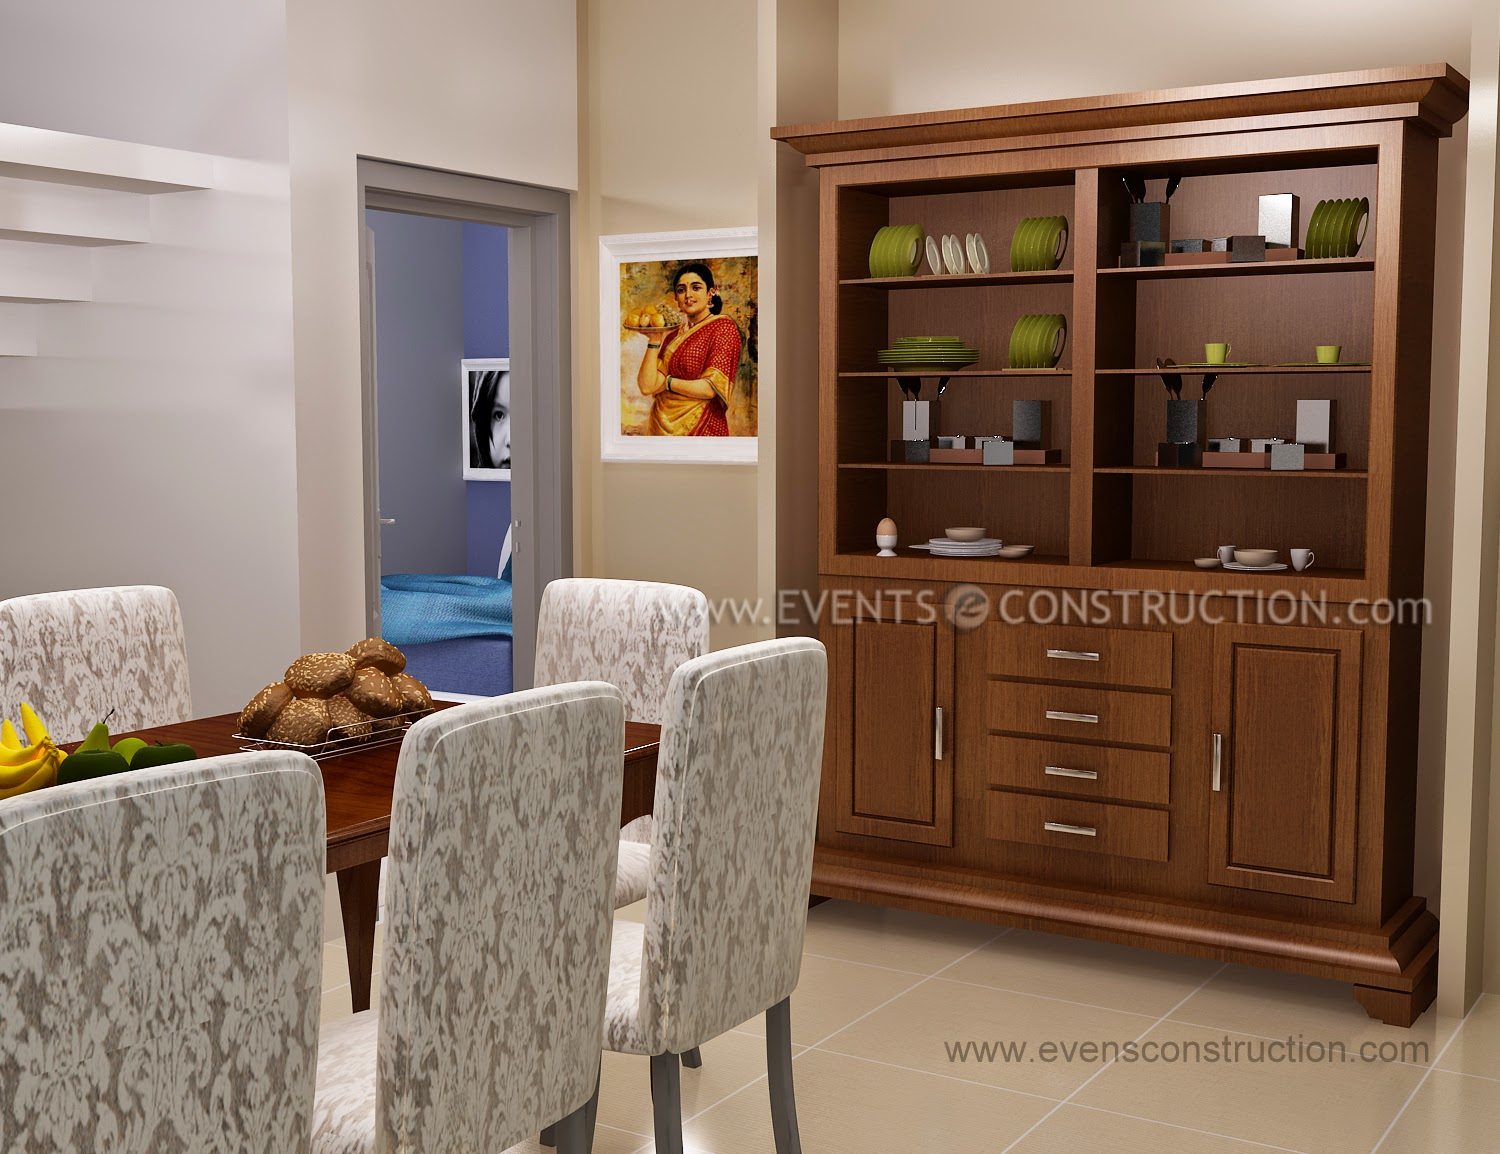 Simple Kerala Dining Room With Crockery Shelf